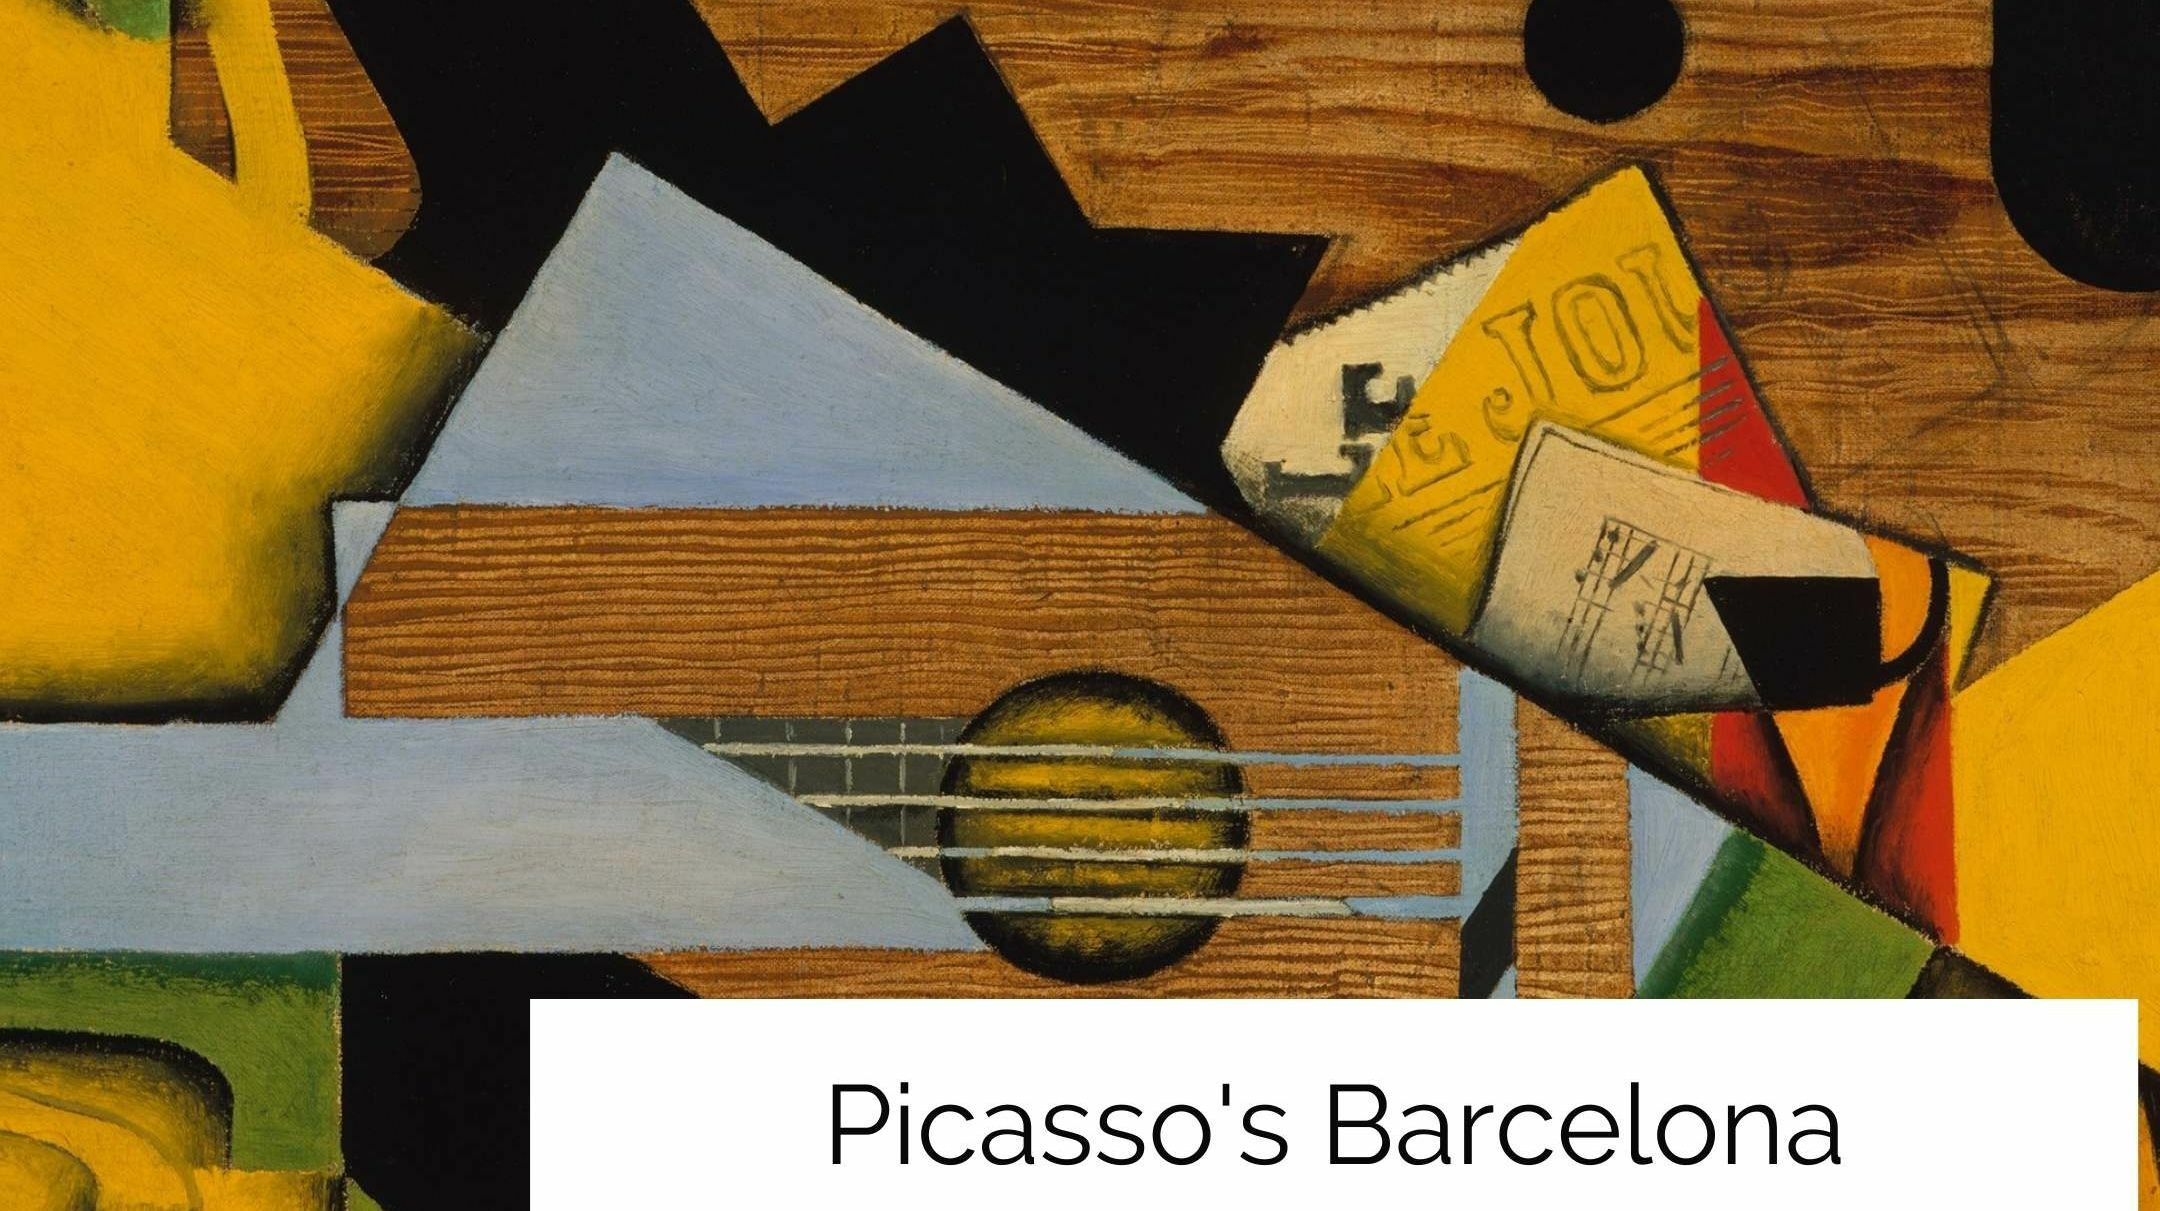 Picasso's Barcelona: A Virtual Visit to the Catalan Capital